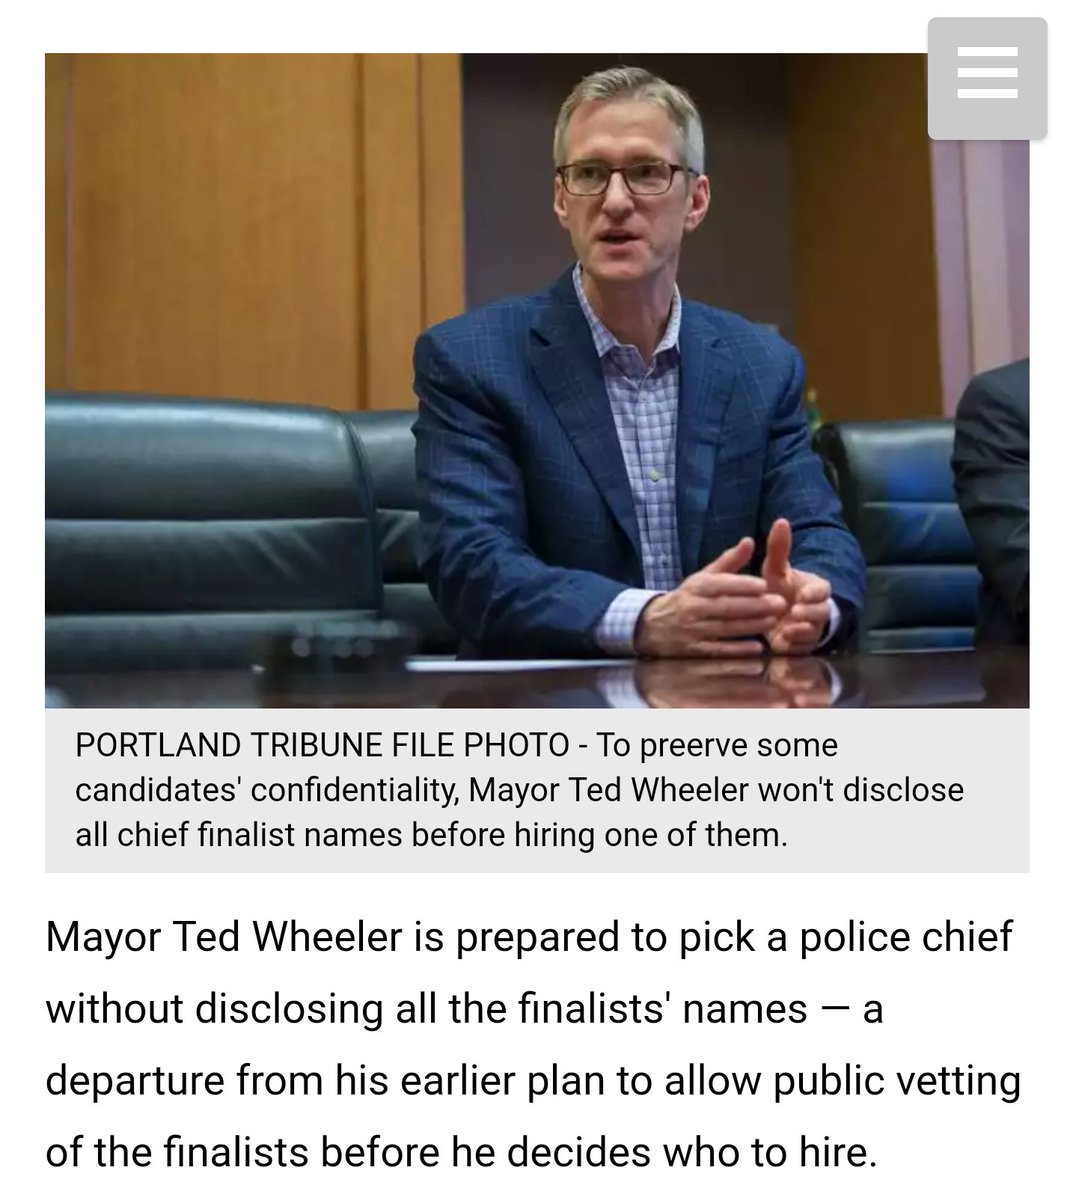 In &#39;99, Mayor Katz announced Police Chief finalists then hosted forum so the public could question them #leadership  http://www. pamplinmedia.com/pt/9-news/3670 66-248743-public-may-not-be-informed-of-police-finalists-names &nbsp; … <br>http://pic.twitter.com/33G0GSID4P